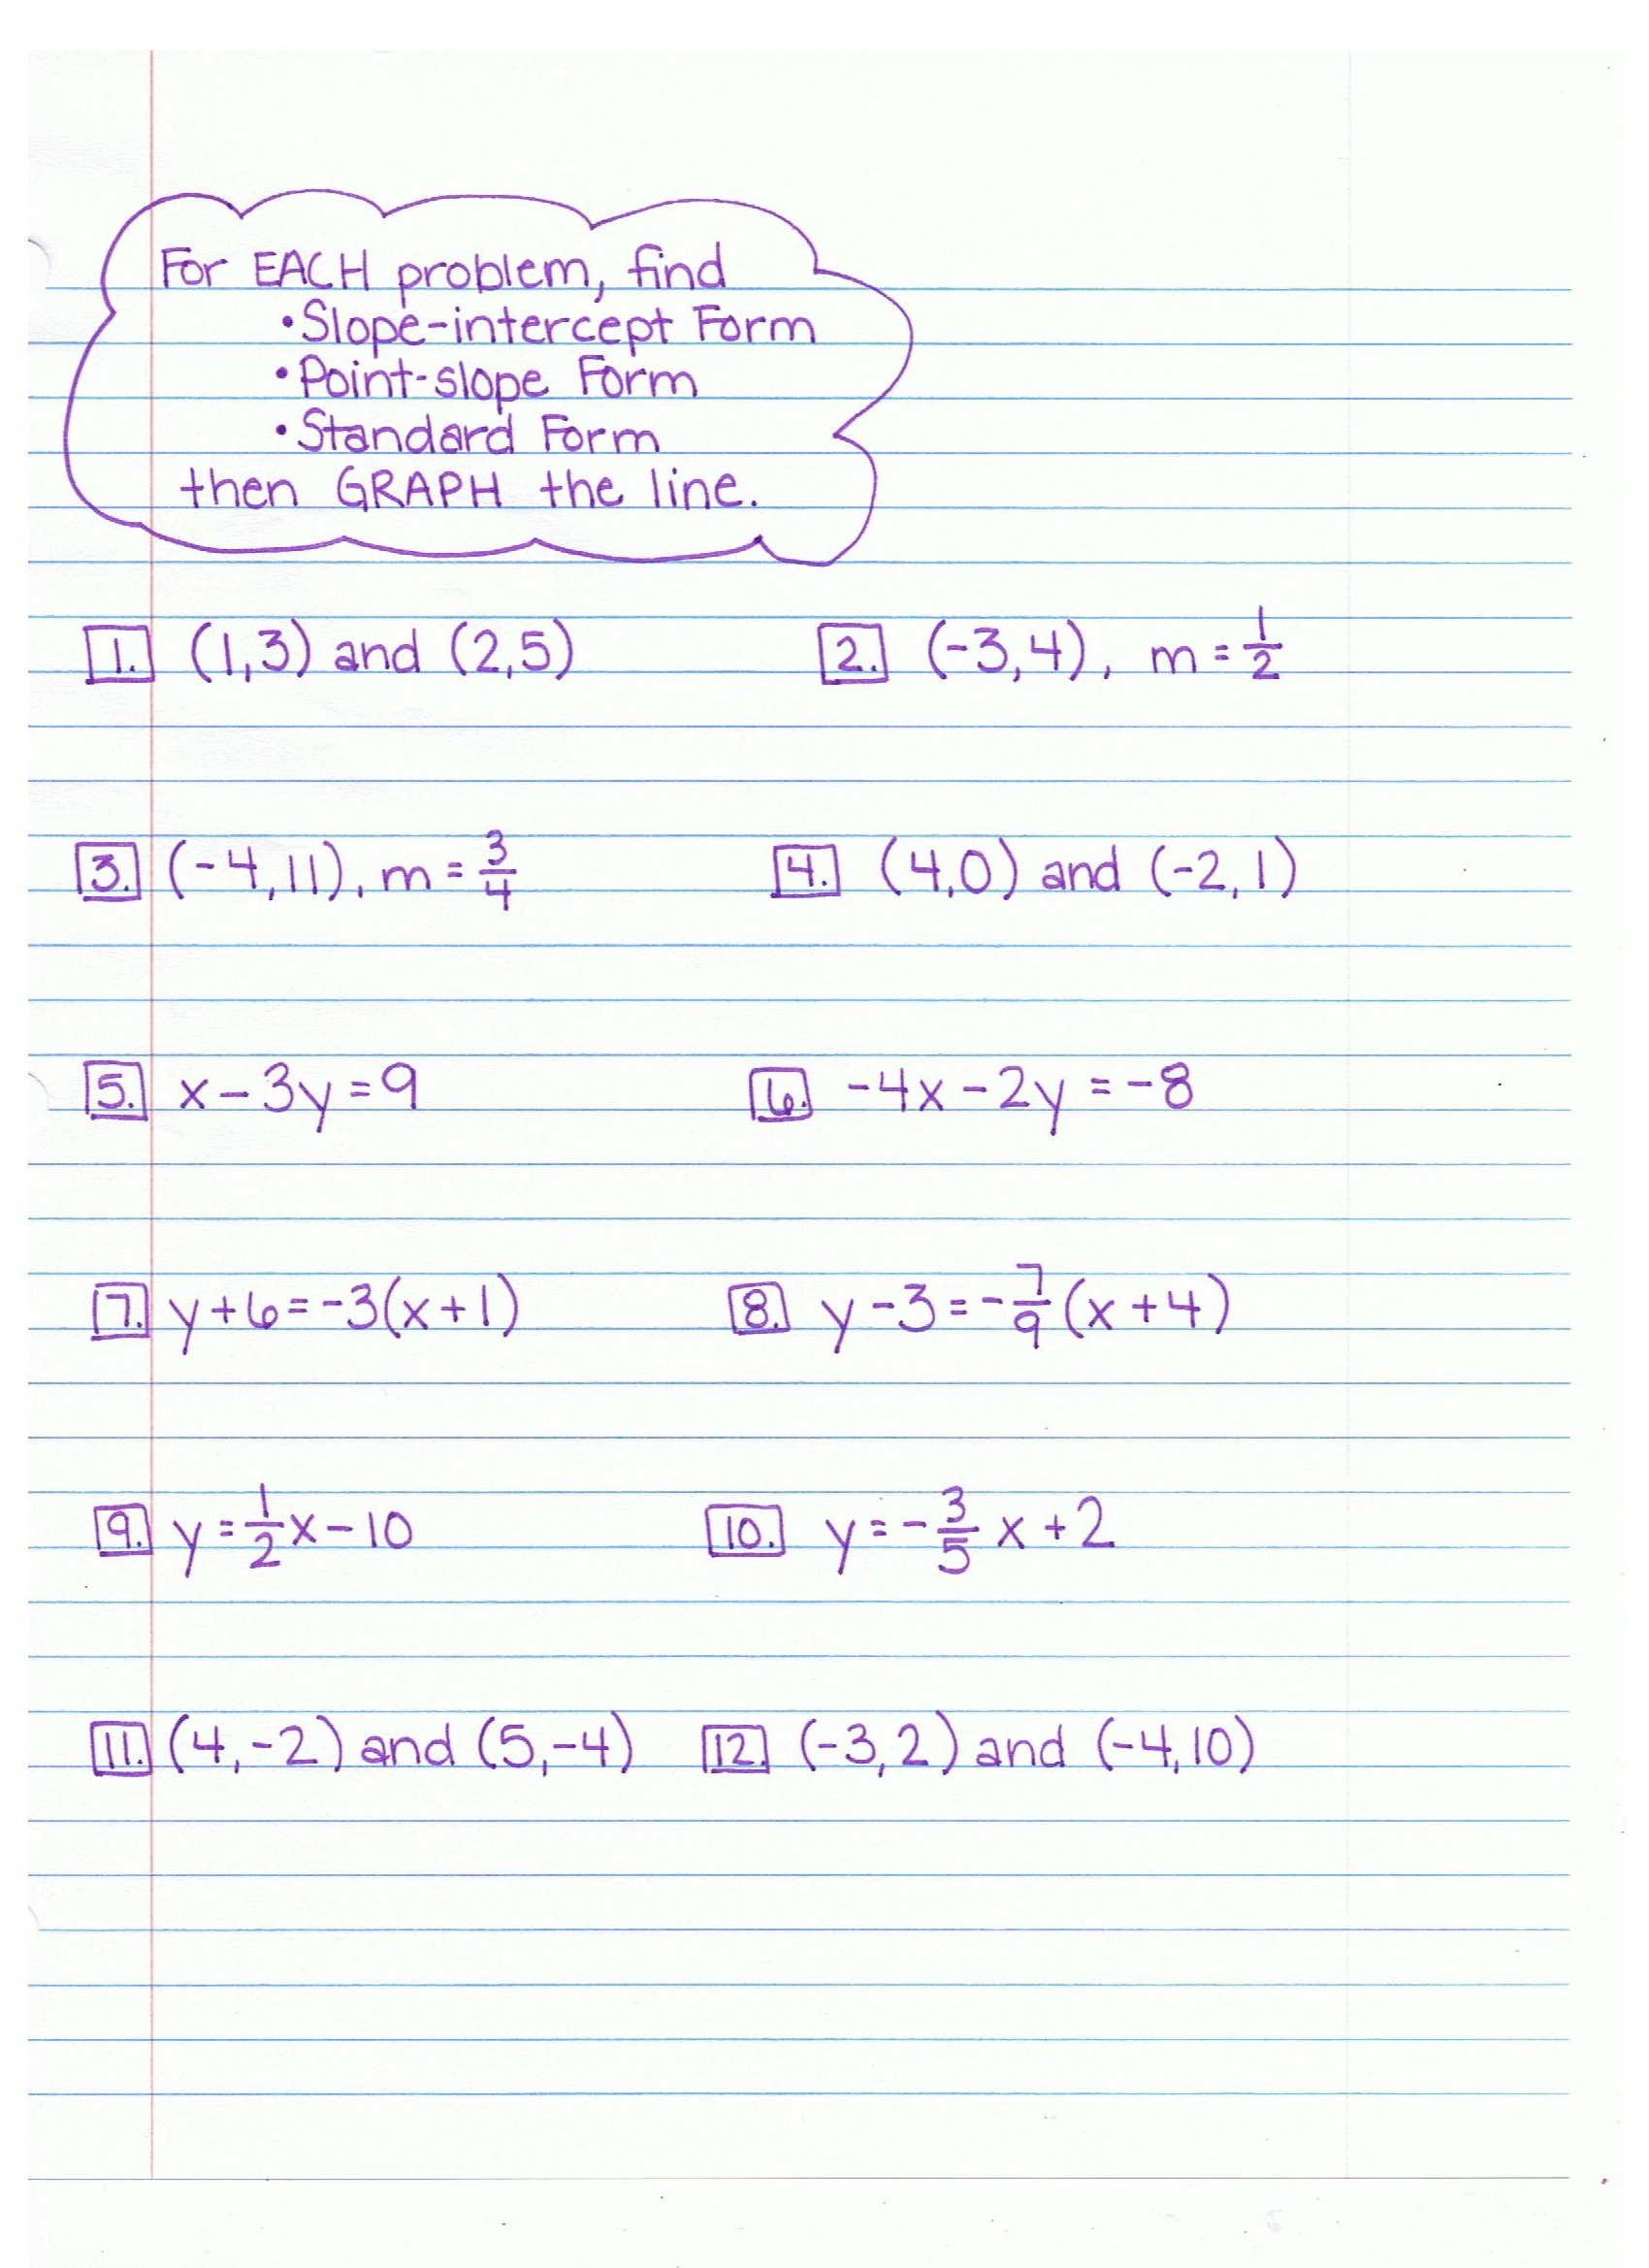 Holt california algebra 1 homework help 100 Original – Algebra 1 Practice Worksheets with Answers